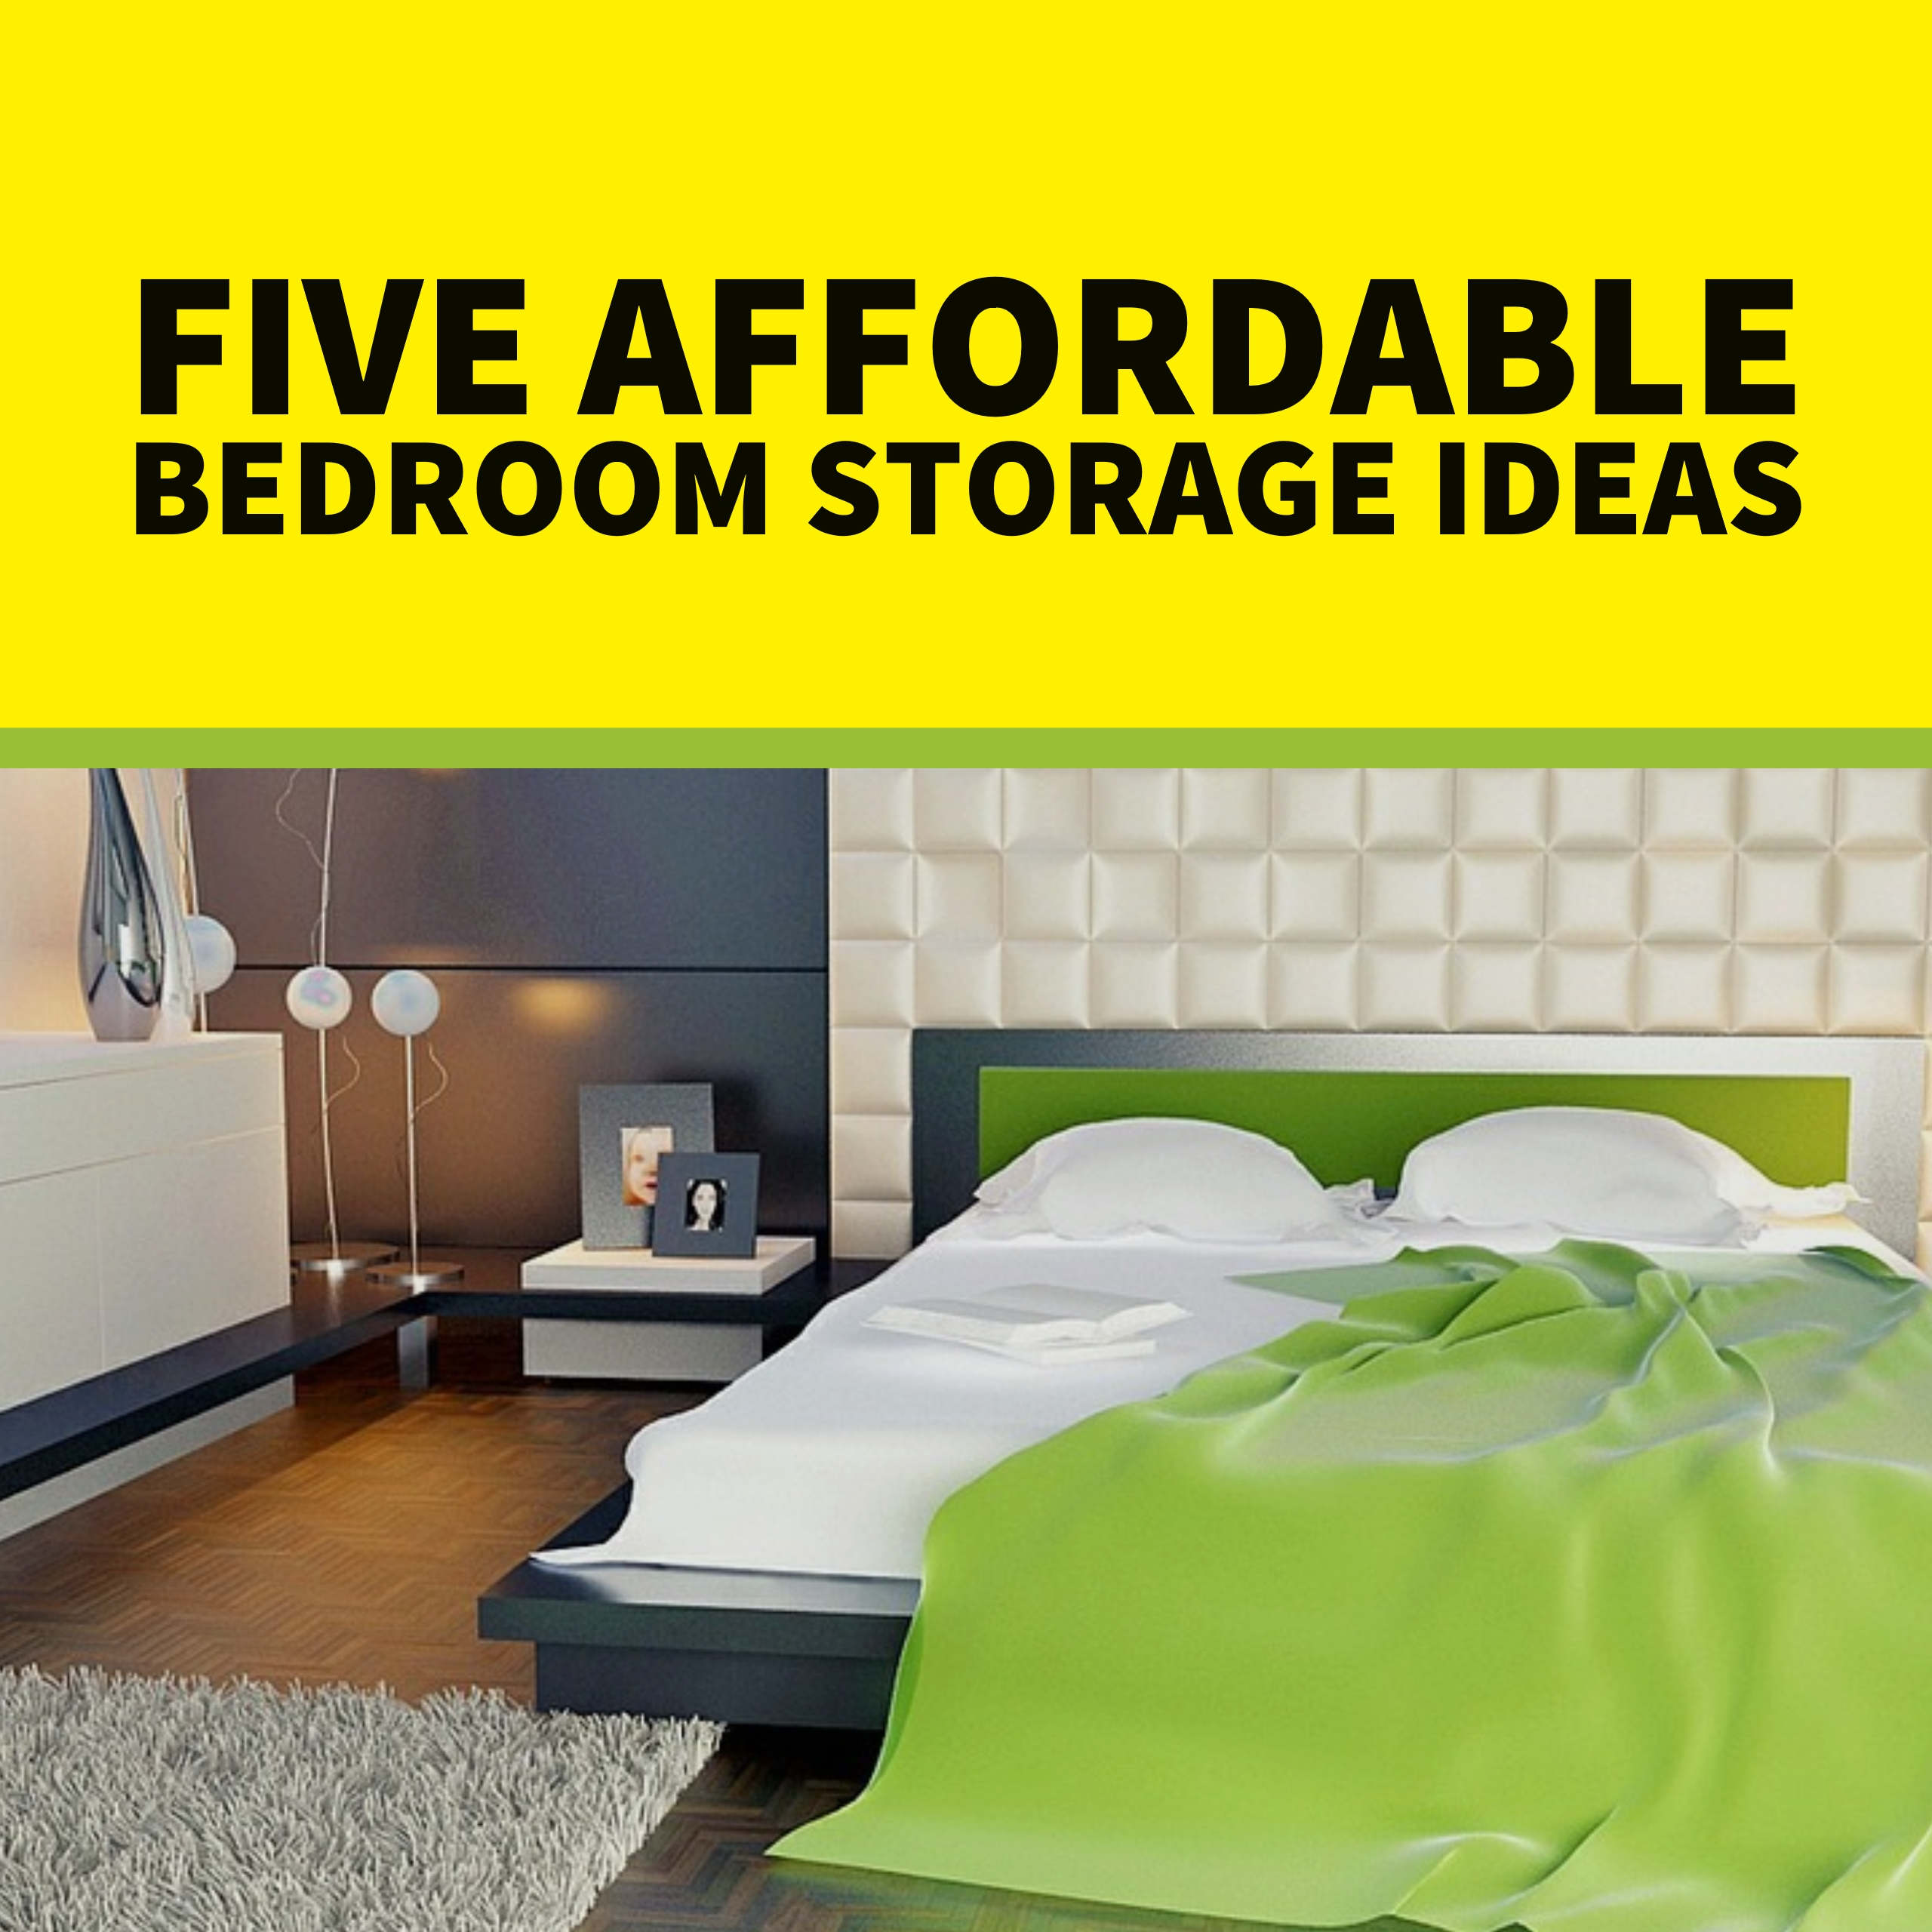 5 Affordable Bedroom Storage Ideas